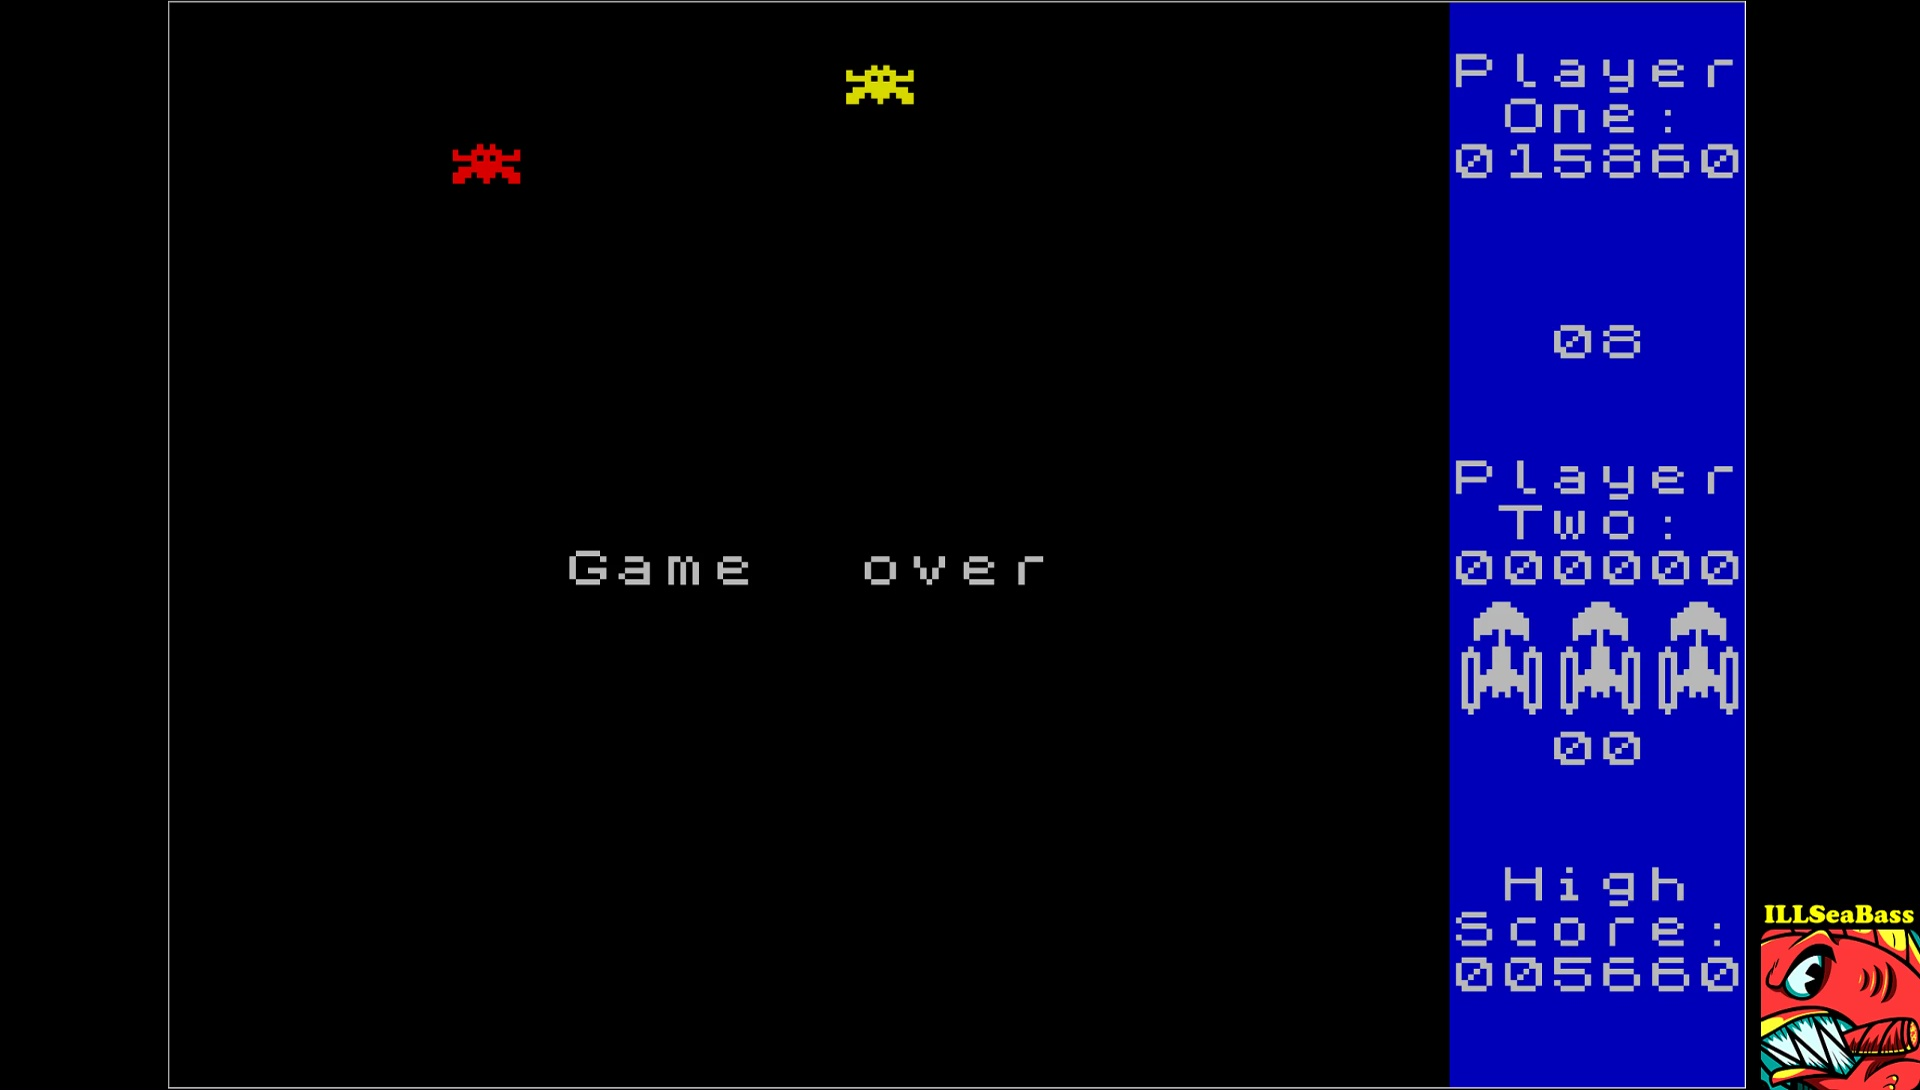 ILLSeaBass: Galaxians [Level 1 Start] (ZX Spectrum Emulated) 15,860 points on 2017-06-17 12:00:35